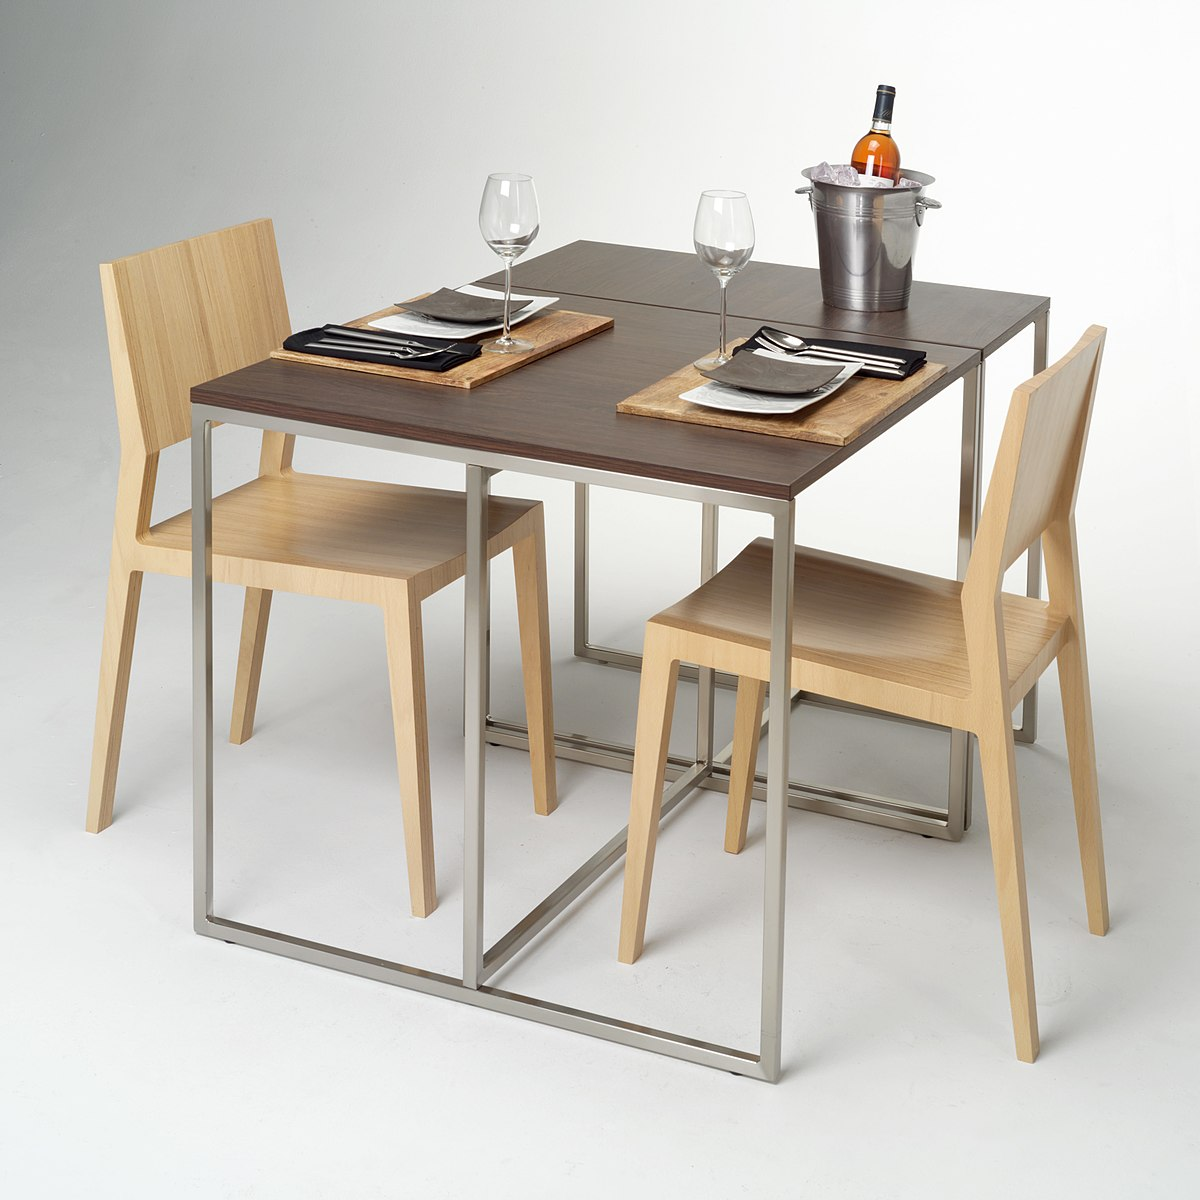 Furniture wikipedia for Dining table design modern